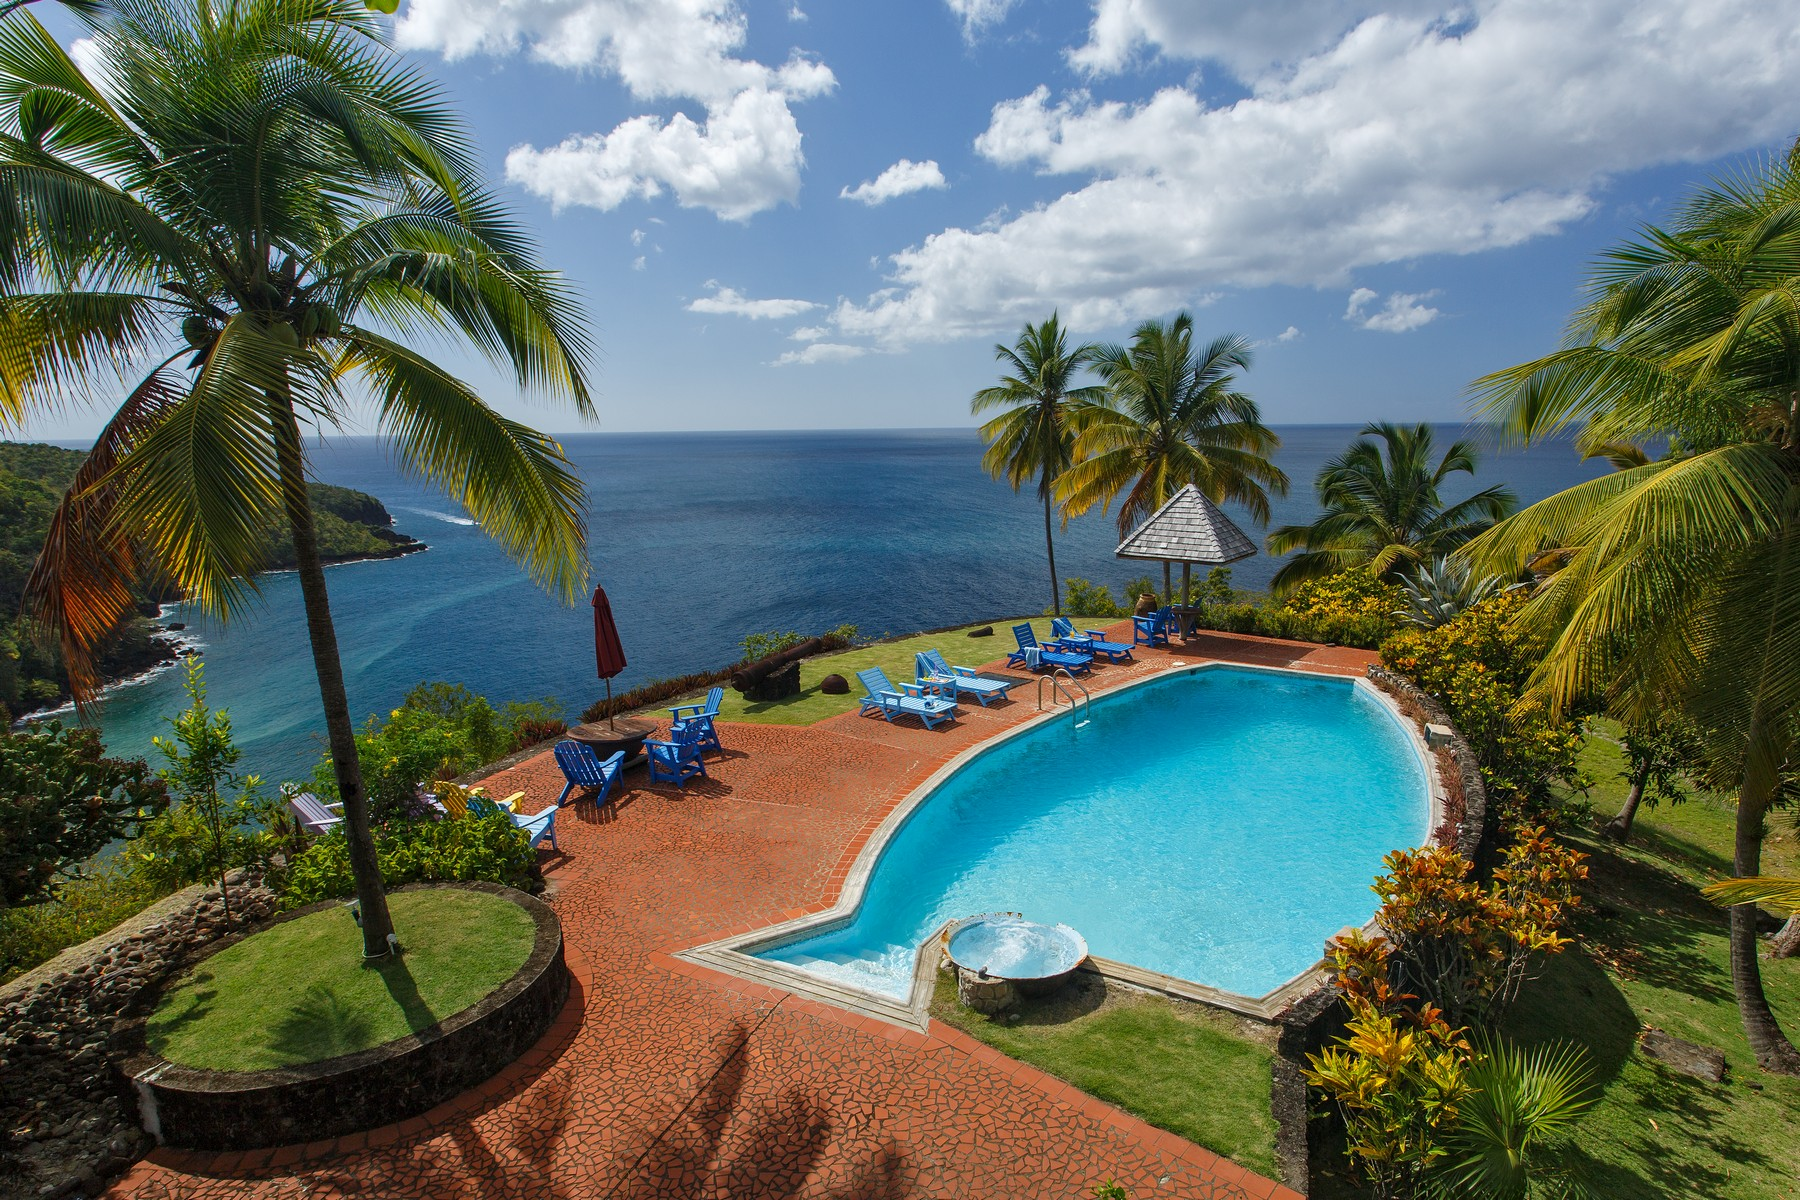 Single Family Home for Sale at Les Chaudieres Anse La Raye, Anse-La-Raye, St. Lucia